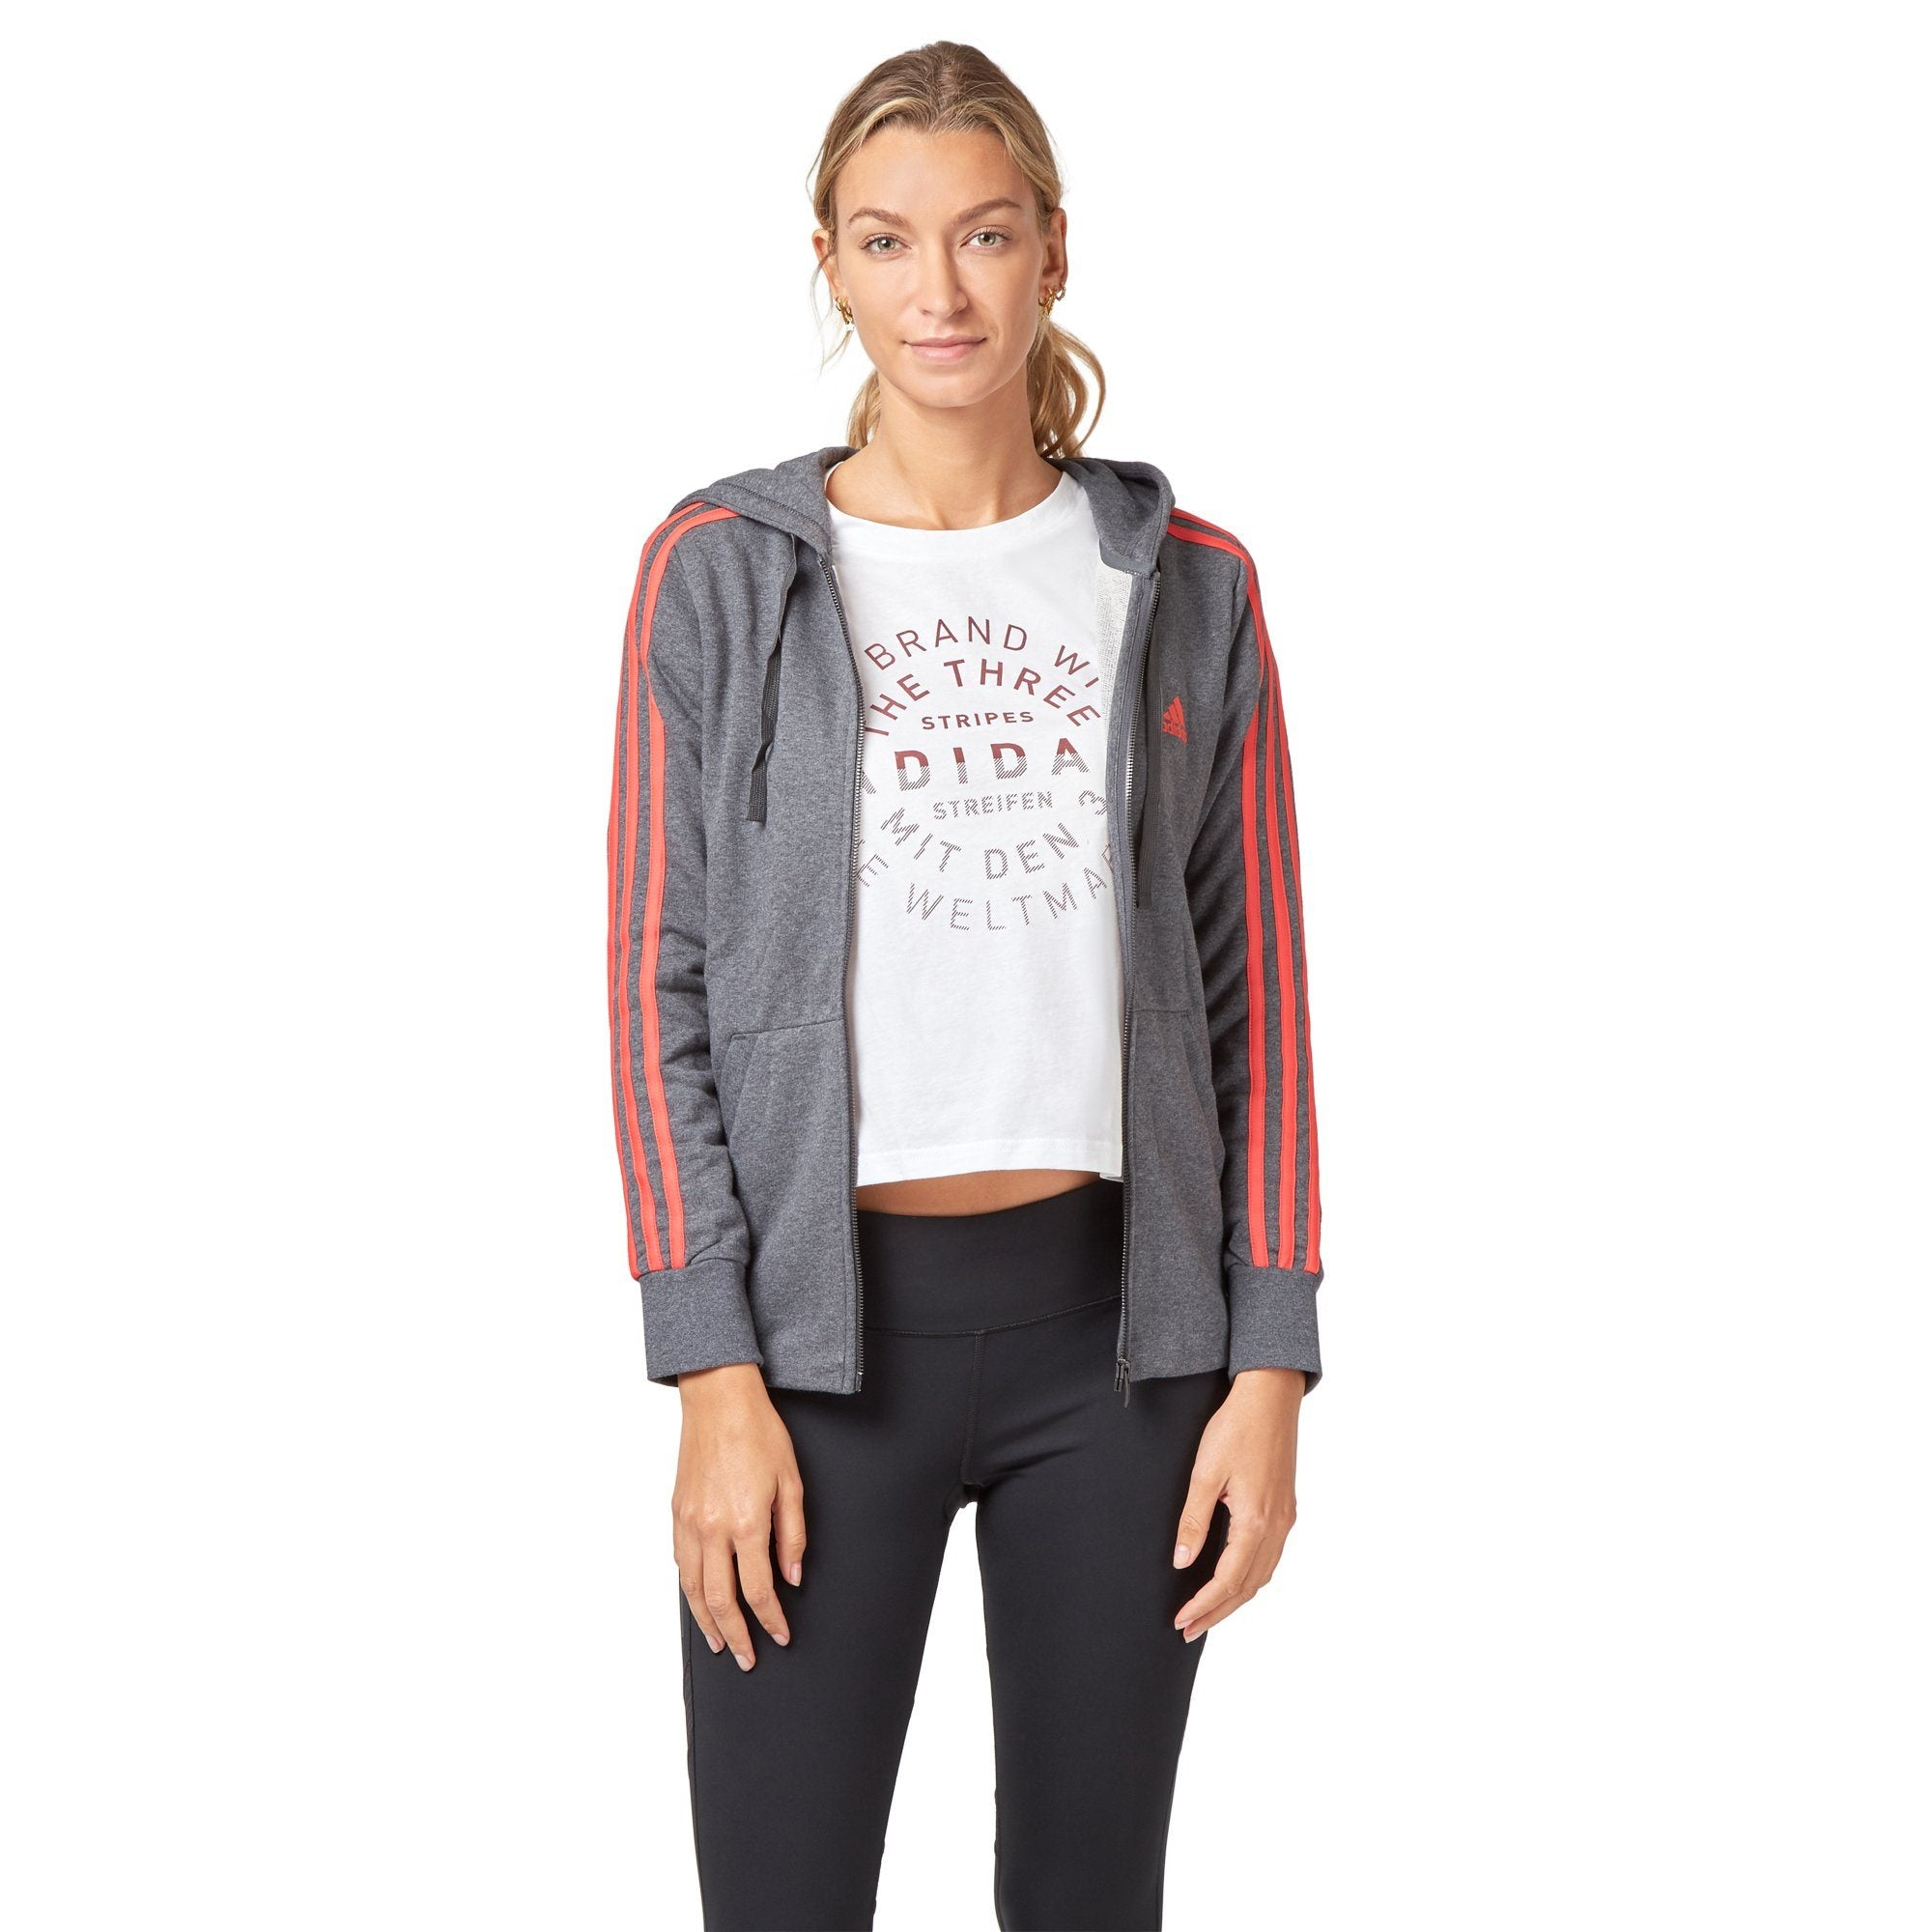 Adidas Women's Essentials 3 Stripes Hoodie - Dark Grey Heather/Real Coral Apparel Adidas  (2012420636731)